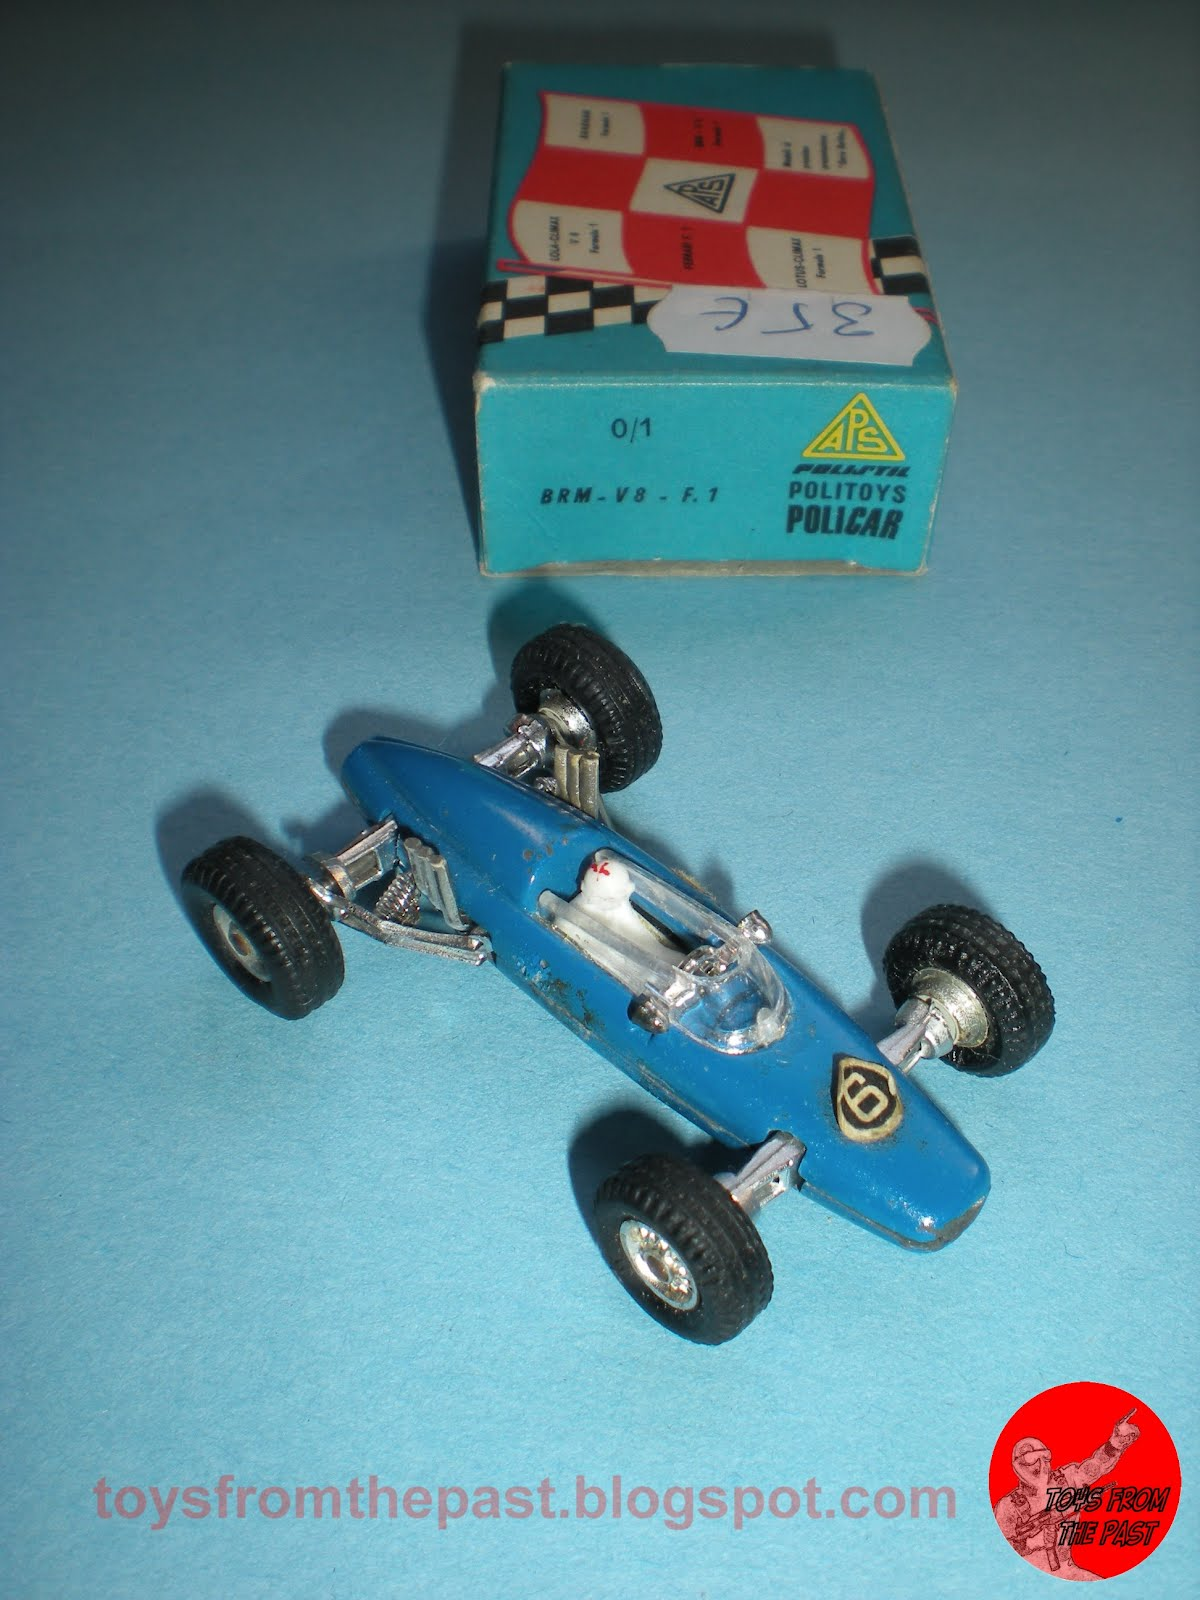 Penny 0/1 BRM V8 F.1 (cc-by-nc-nd 3.0 toysfromthepast)